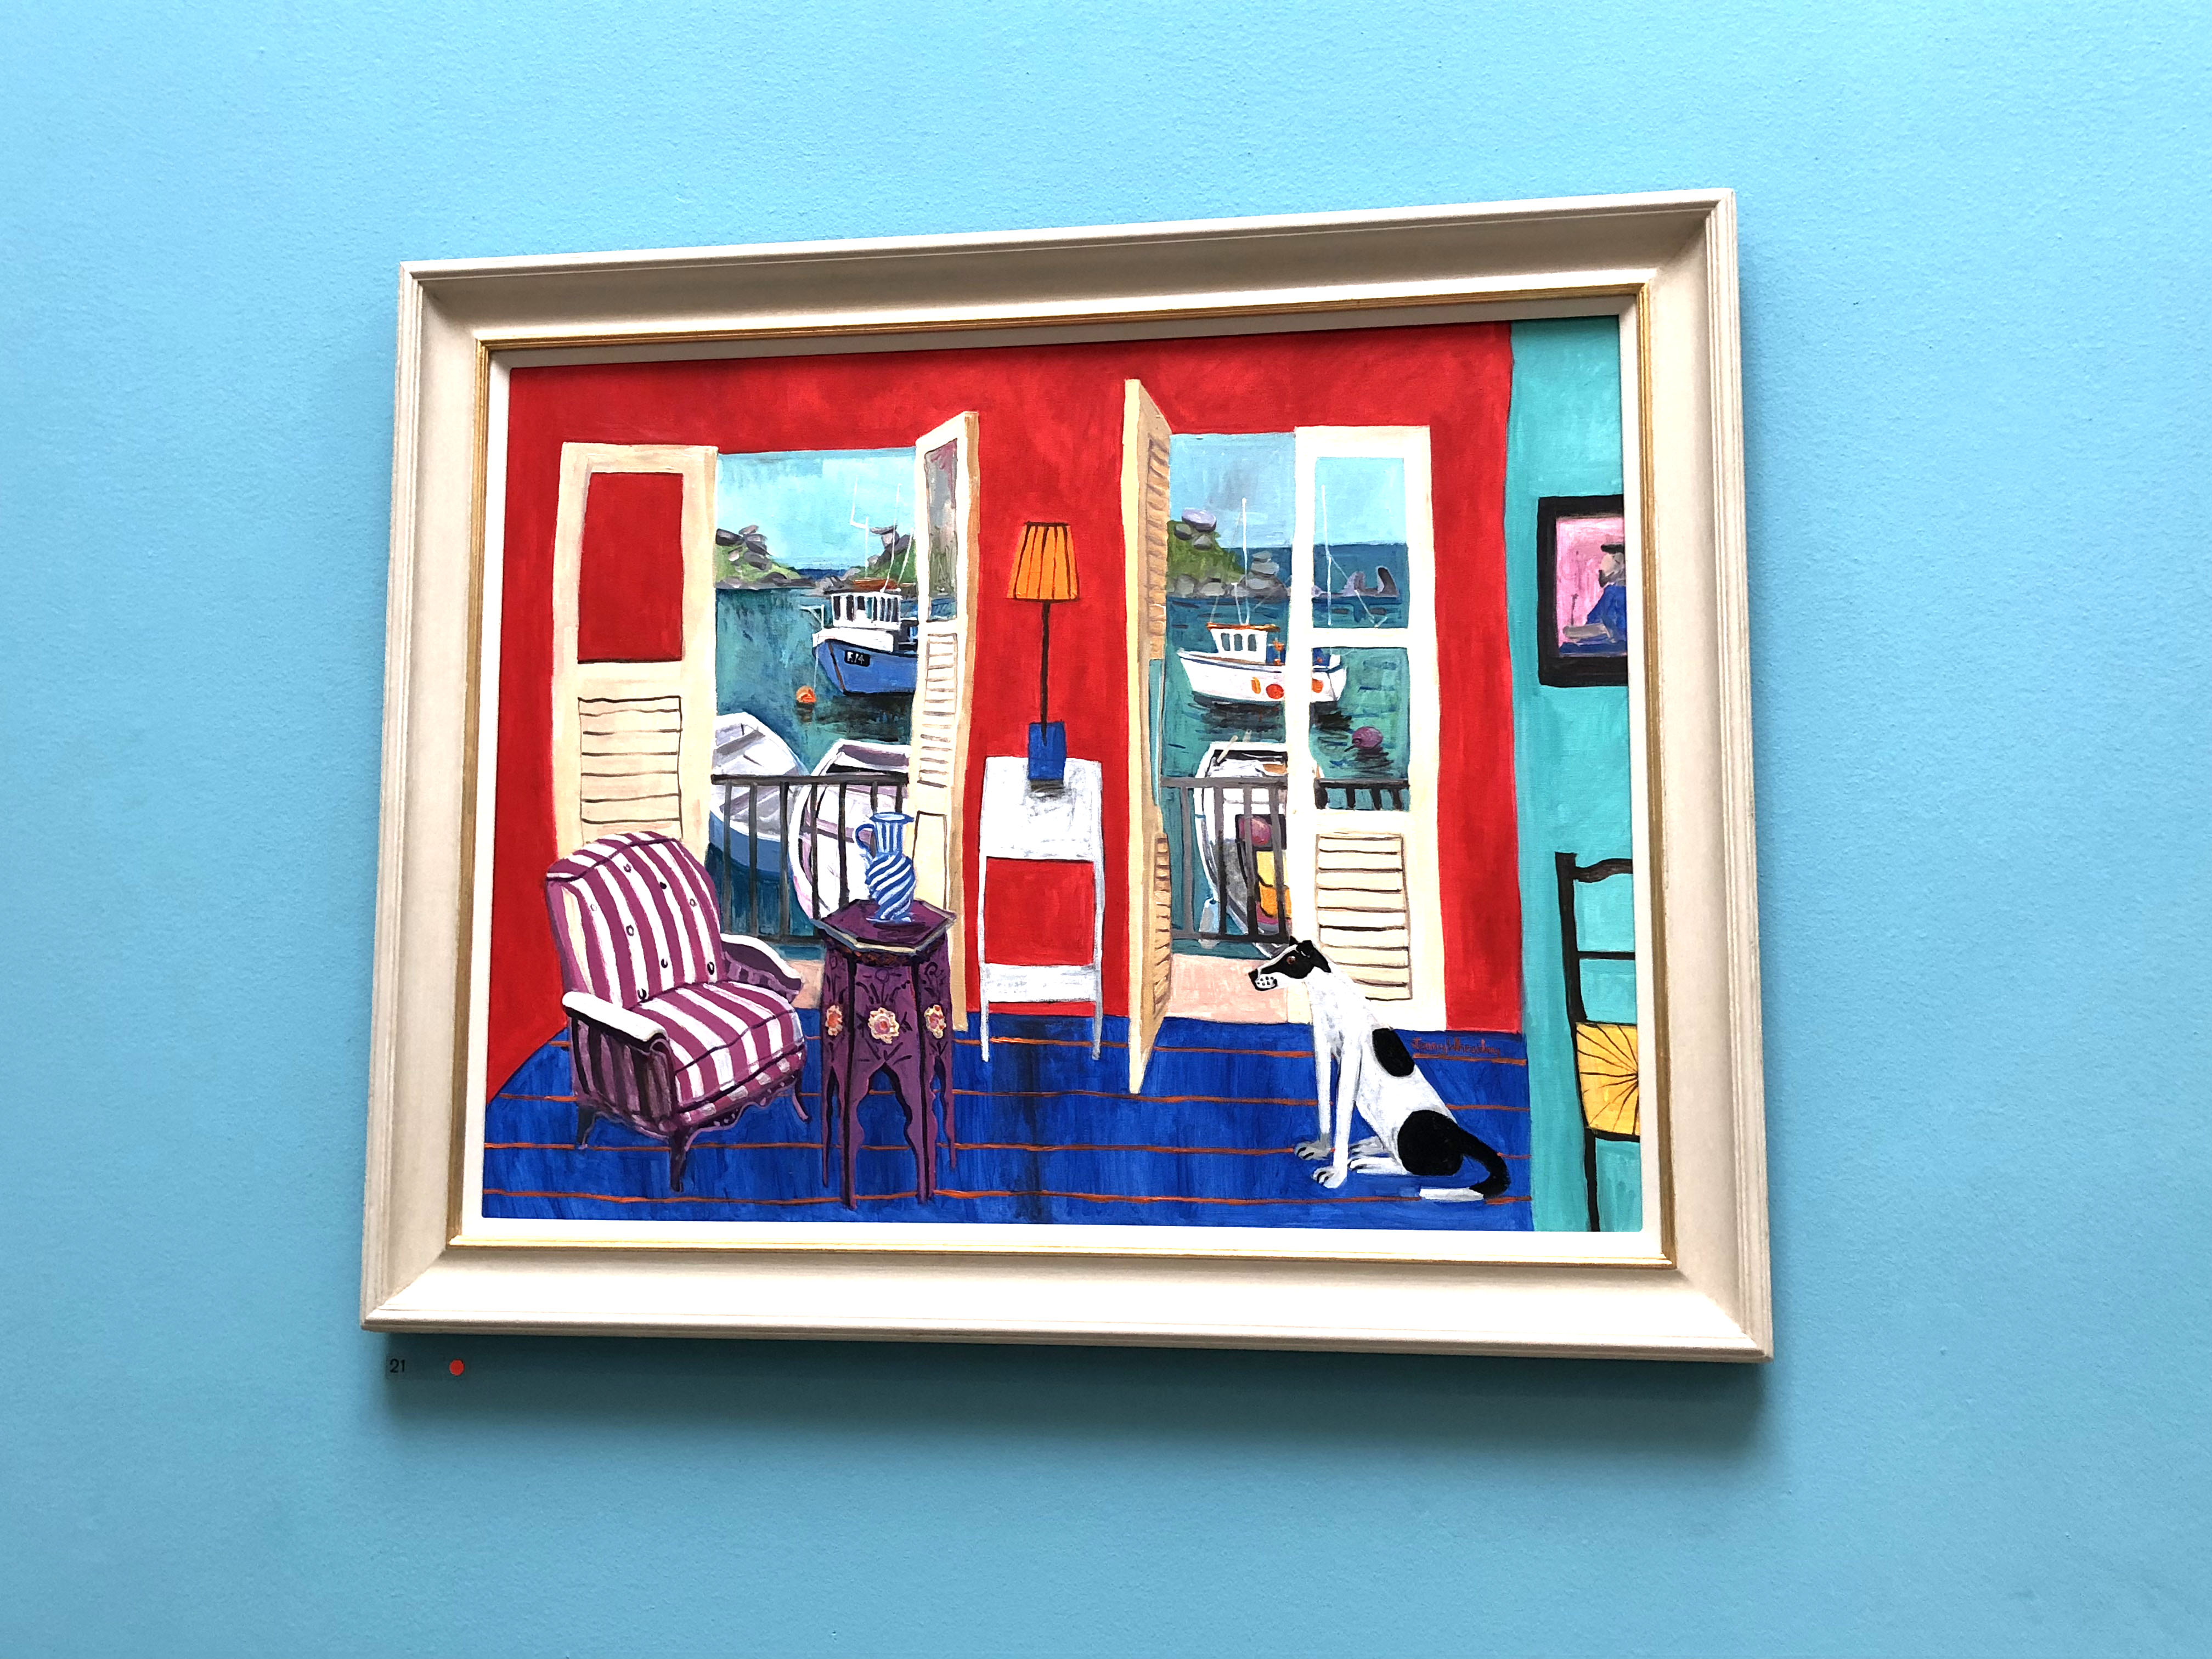 Royal Academy Summer Exhibition 2018. In Between the Islands by Jenny Wheatley